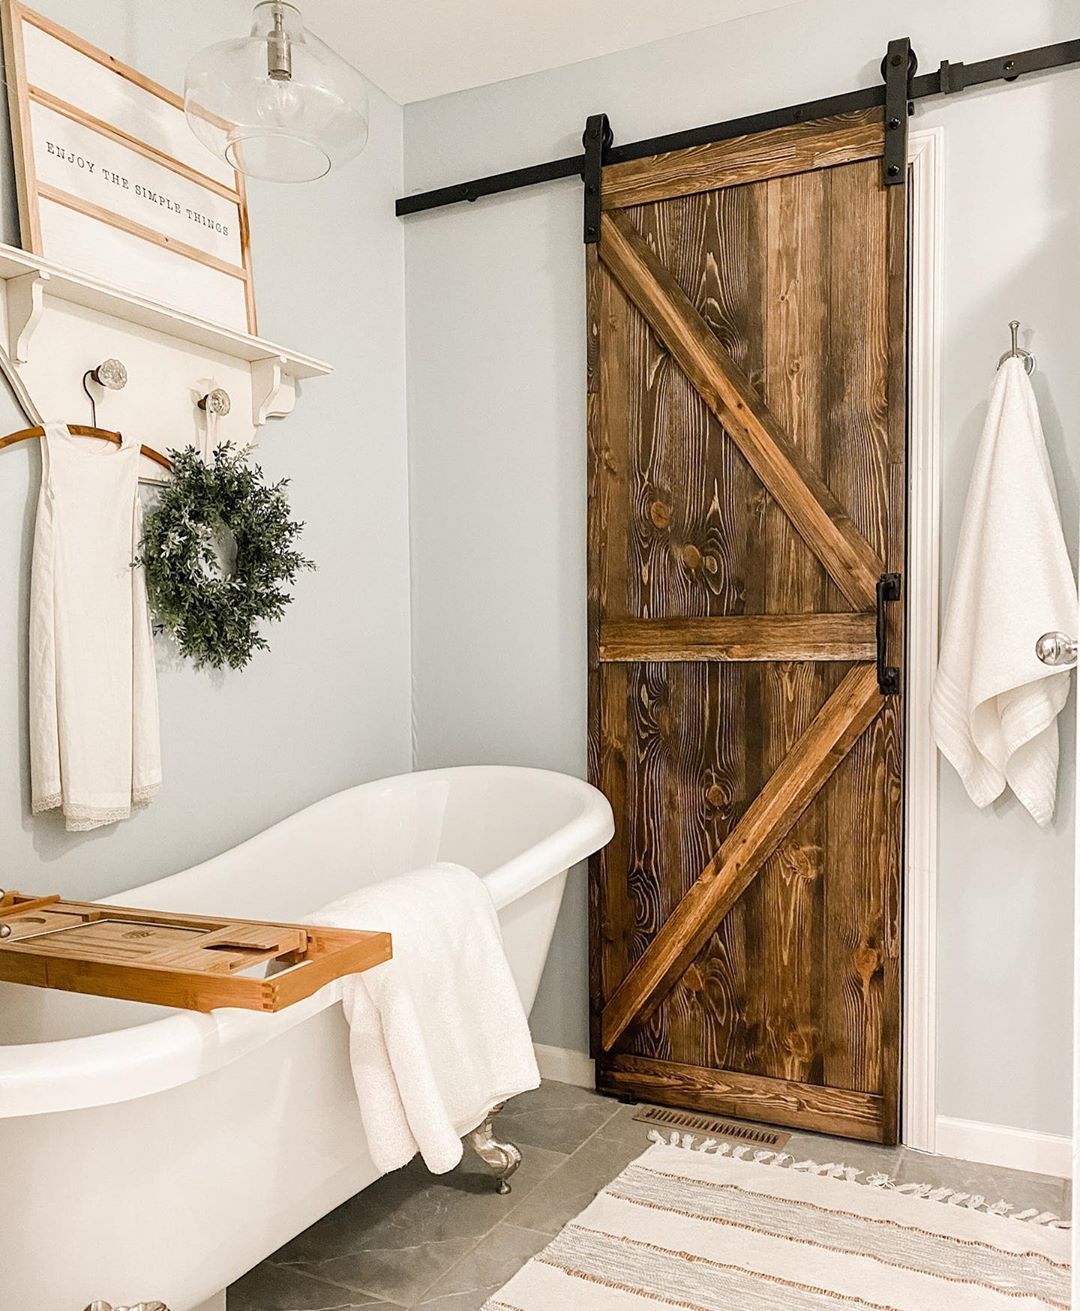 12 Rustic Bathroom Ideas